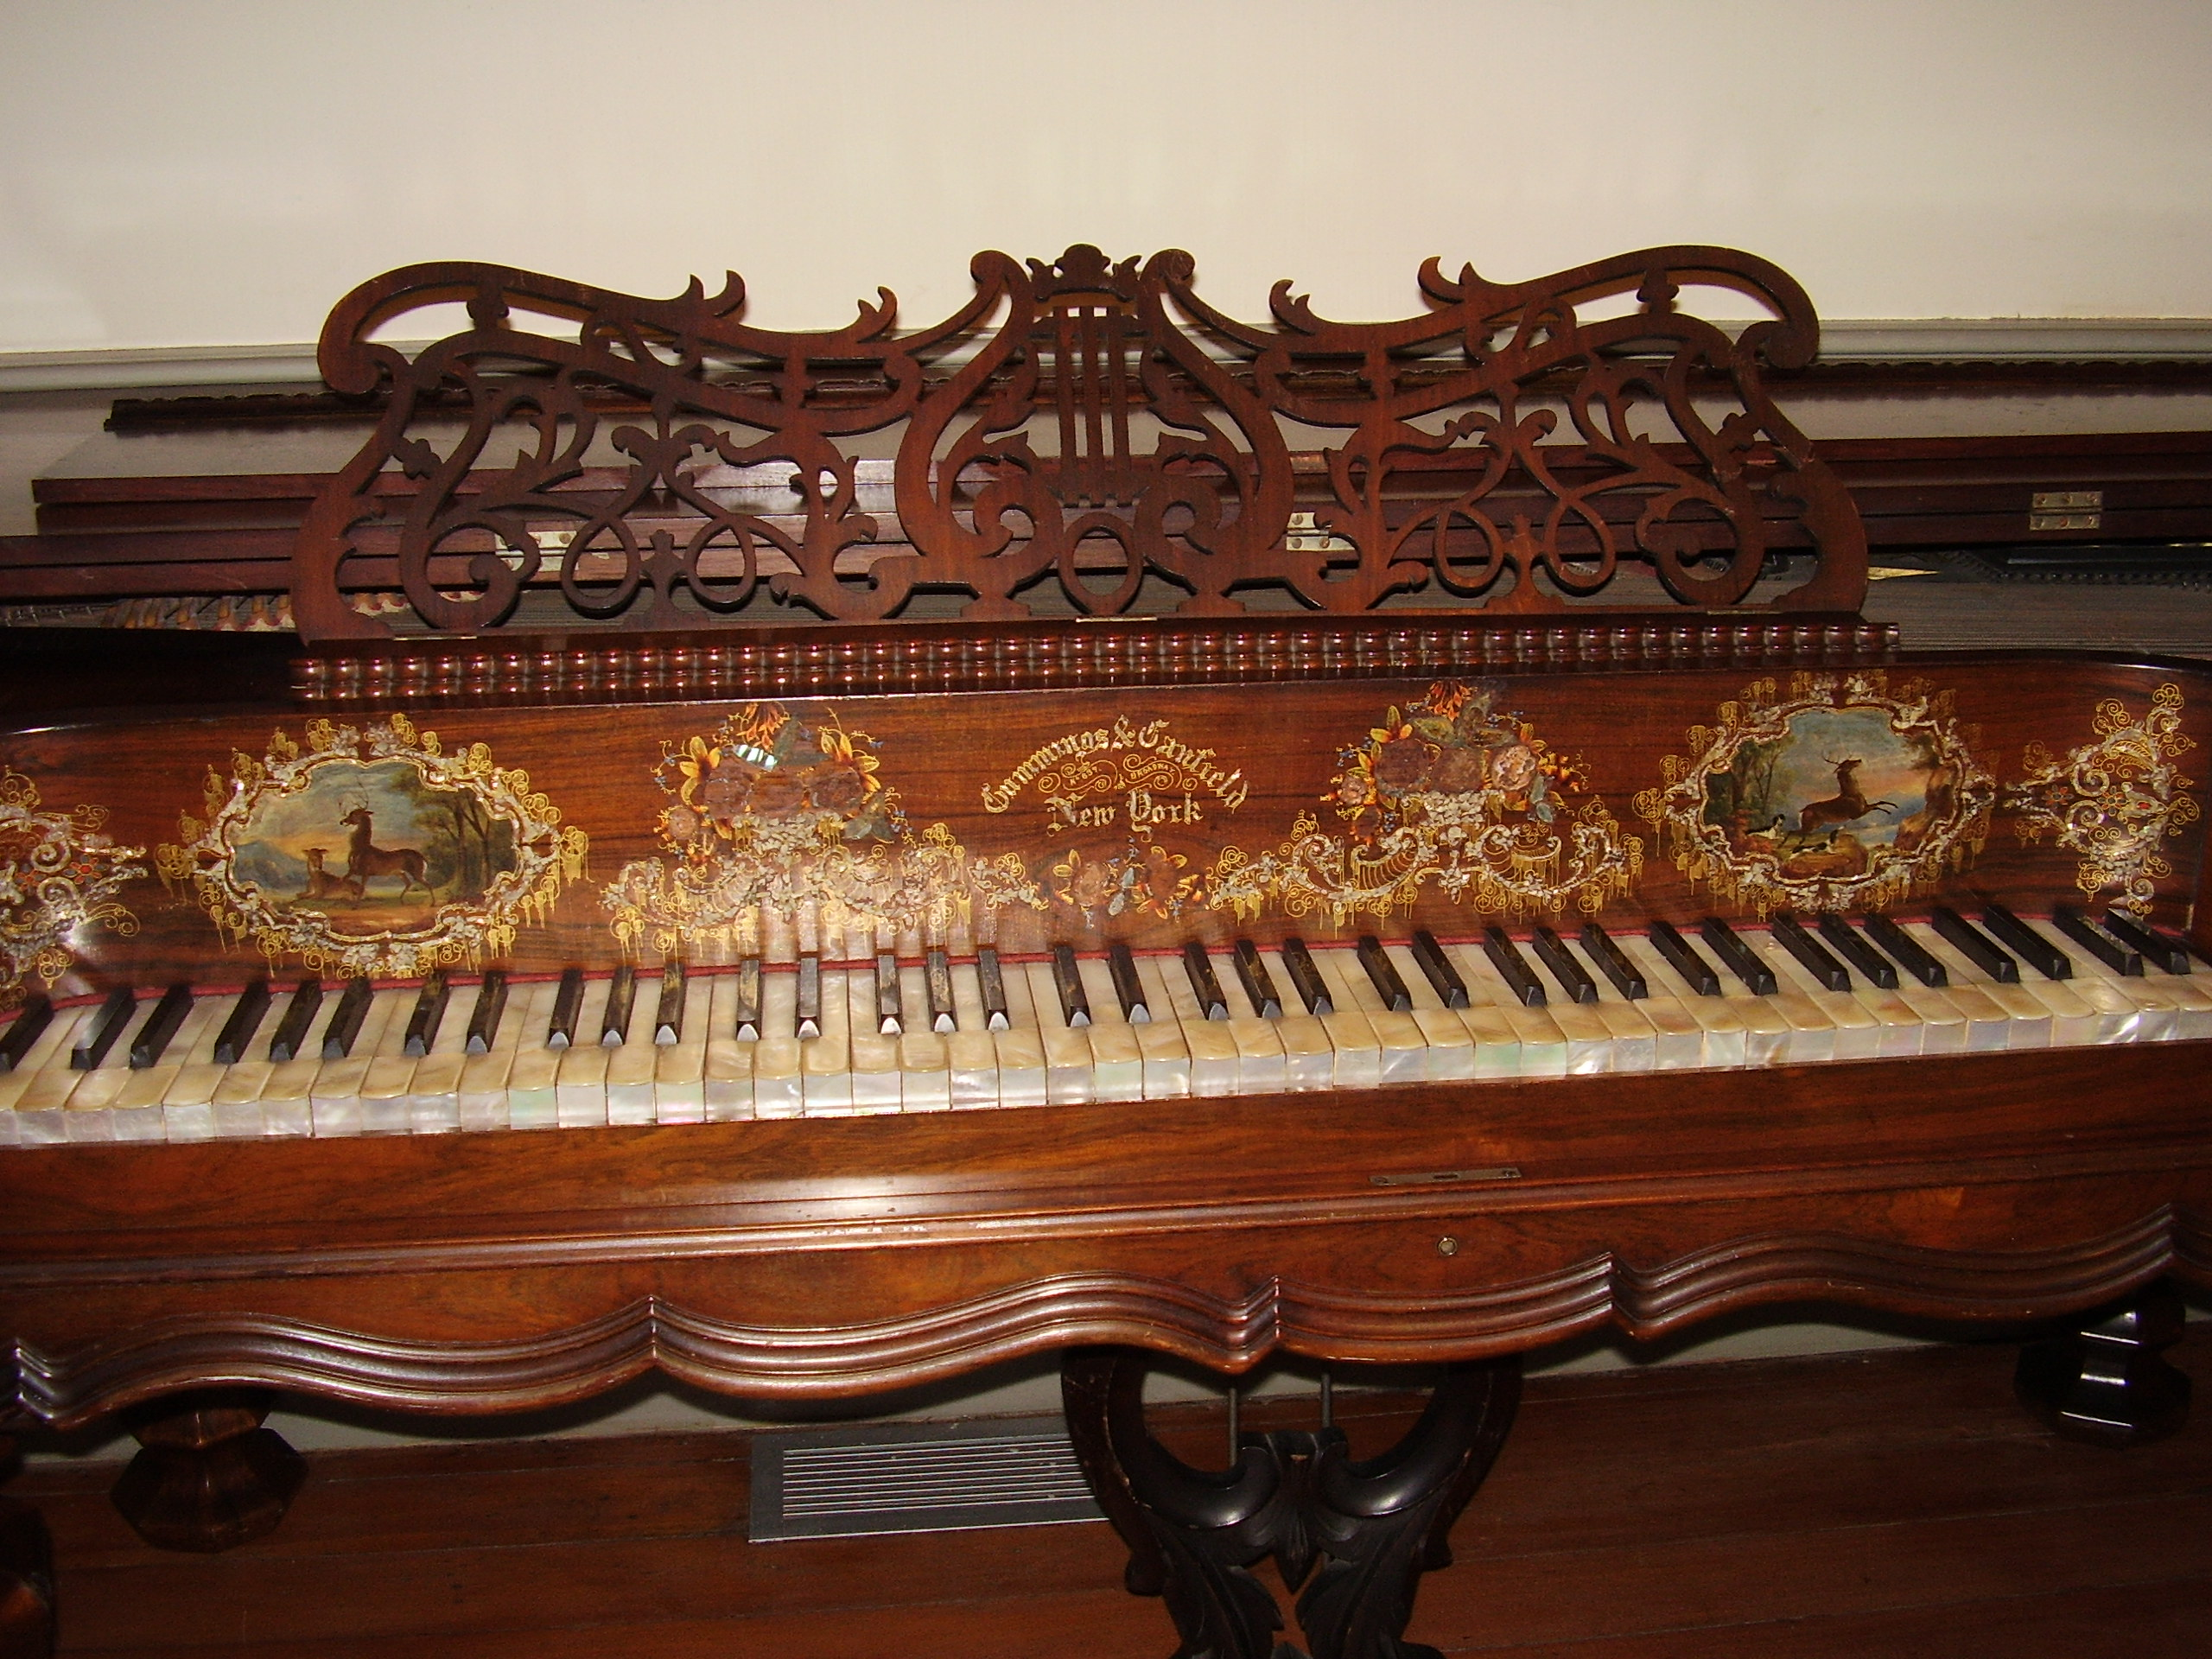 Cumming & Canfield piano ca 1855. Donated to the house by Alice Weeks Patrick. It has mother of pearl keys & gold leaf & mother of pearl inlay. It is one of only 5 such pianos known to exist.